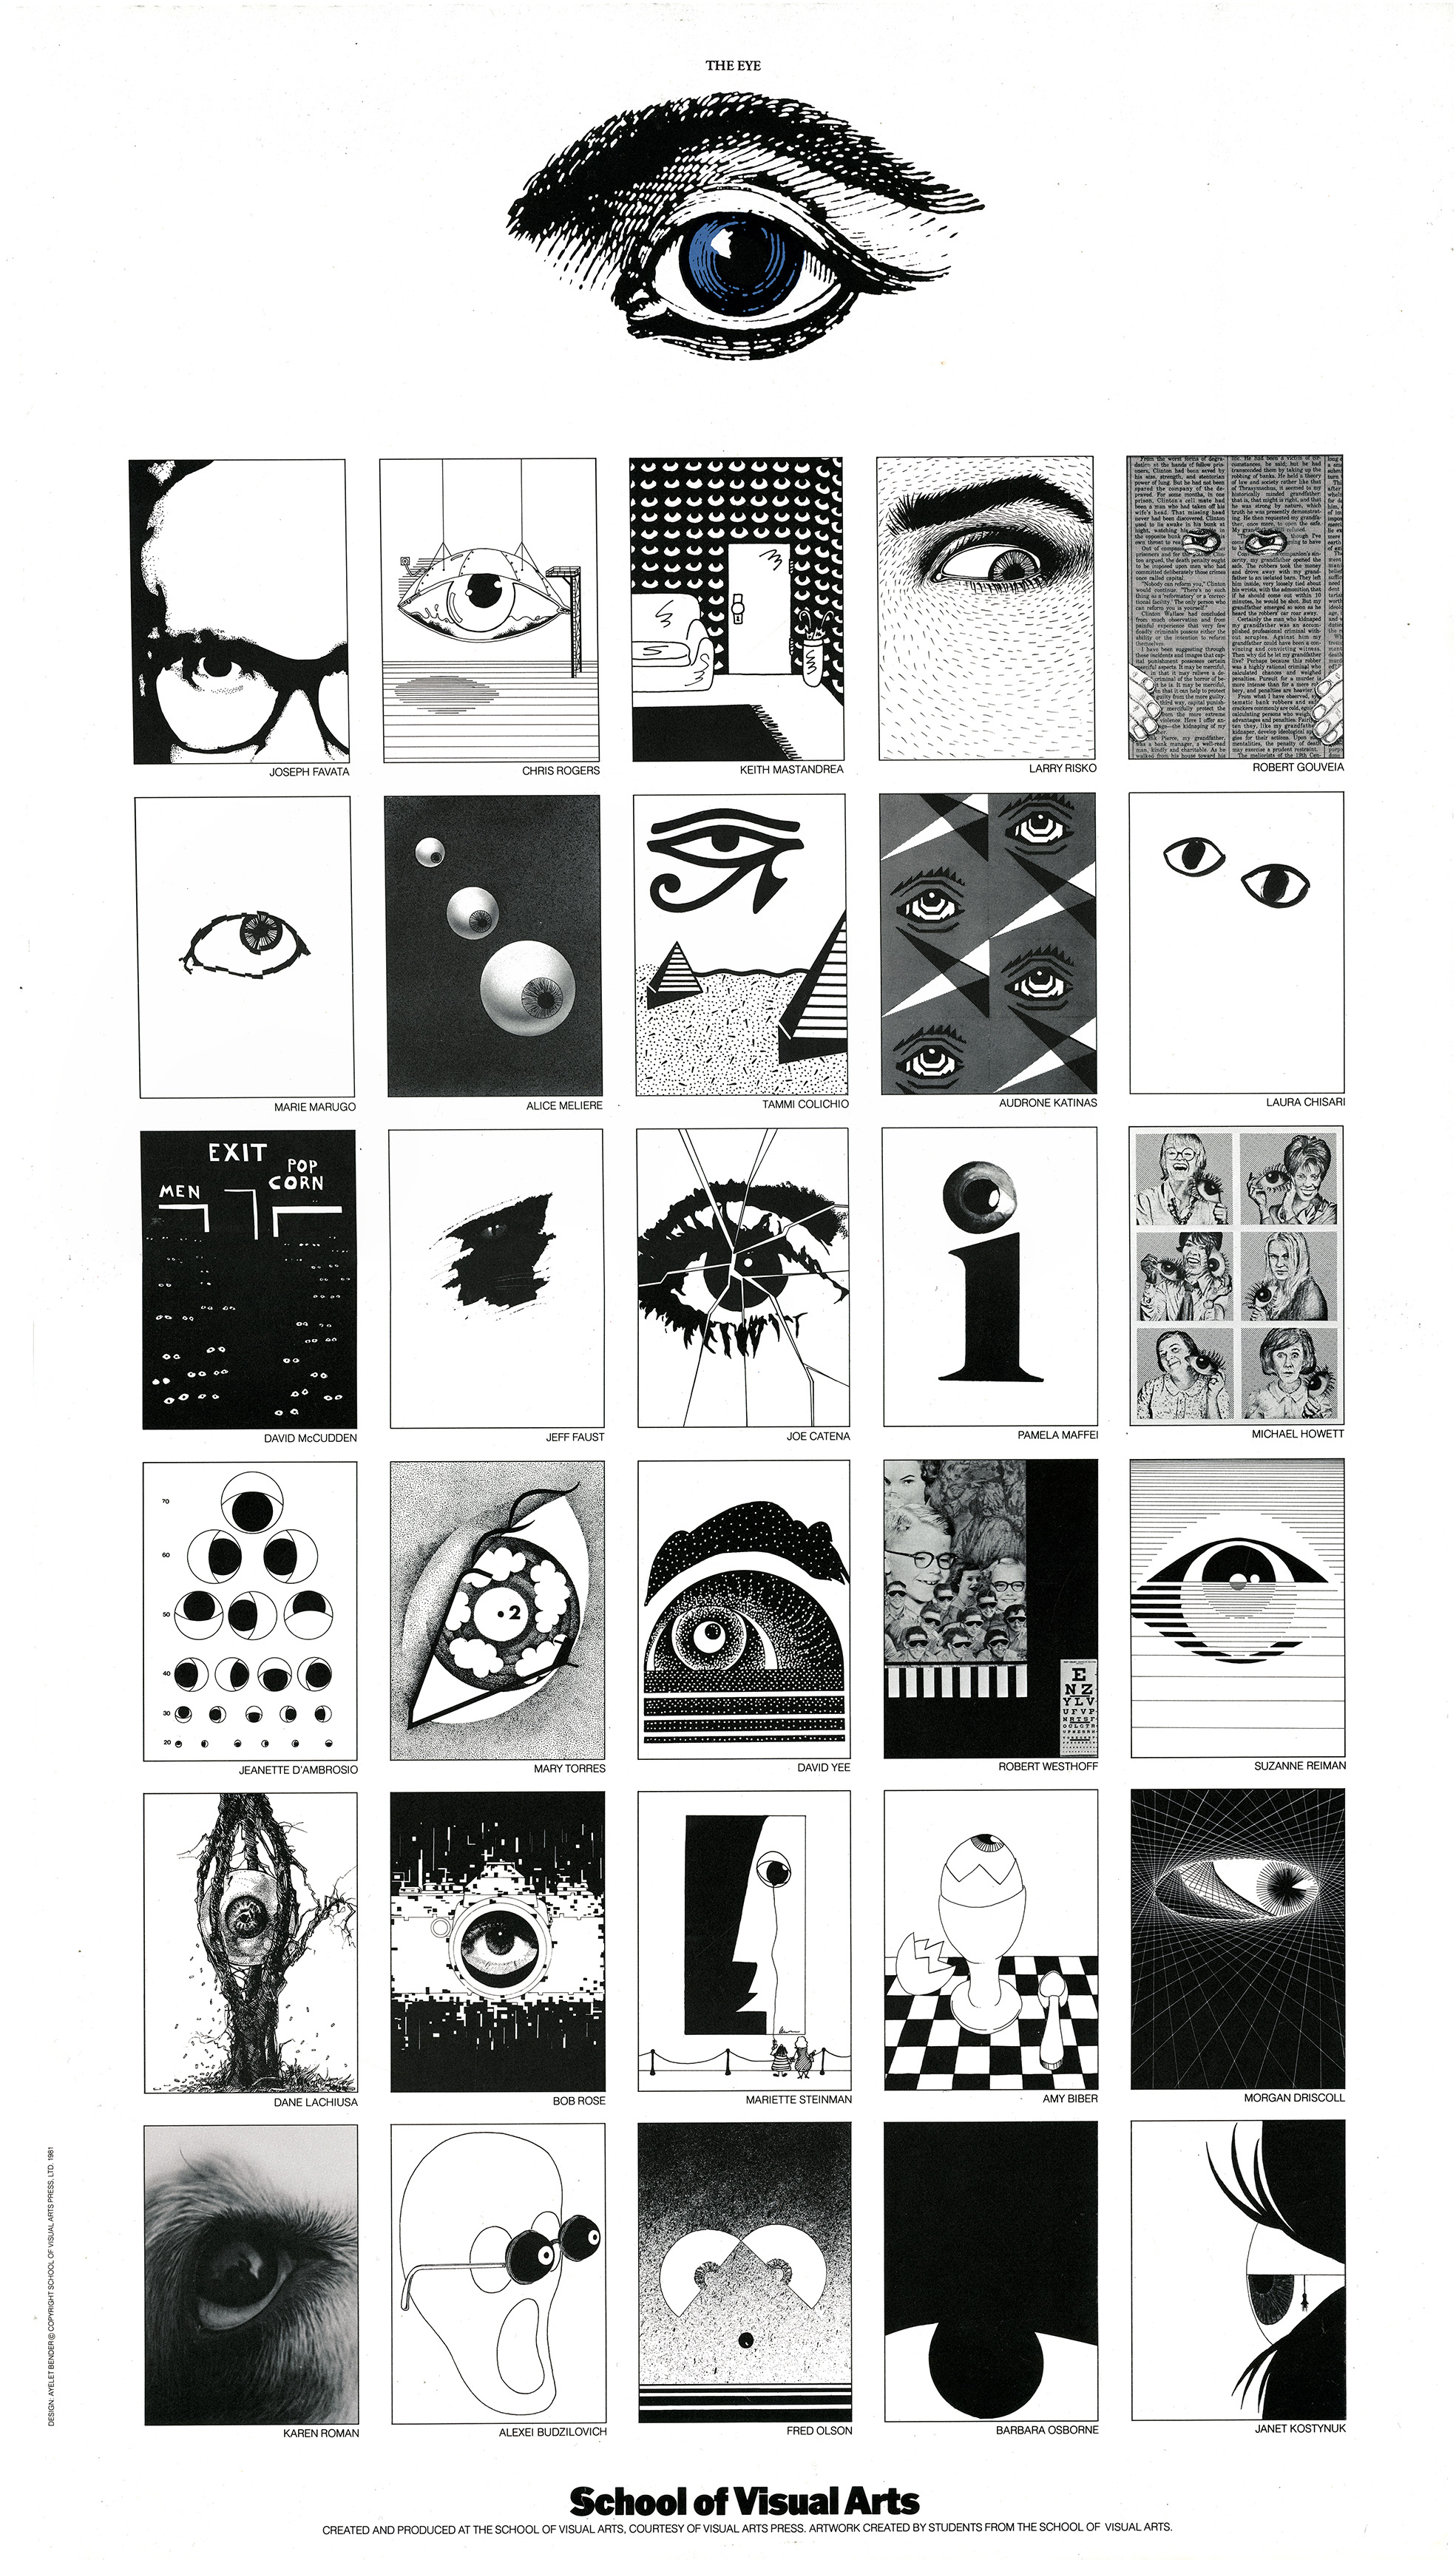 Grid of illustrations of human eyes.